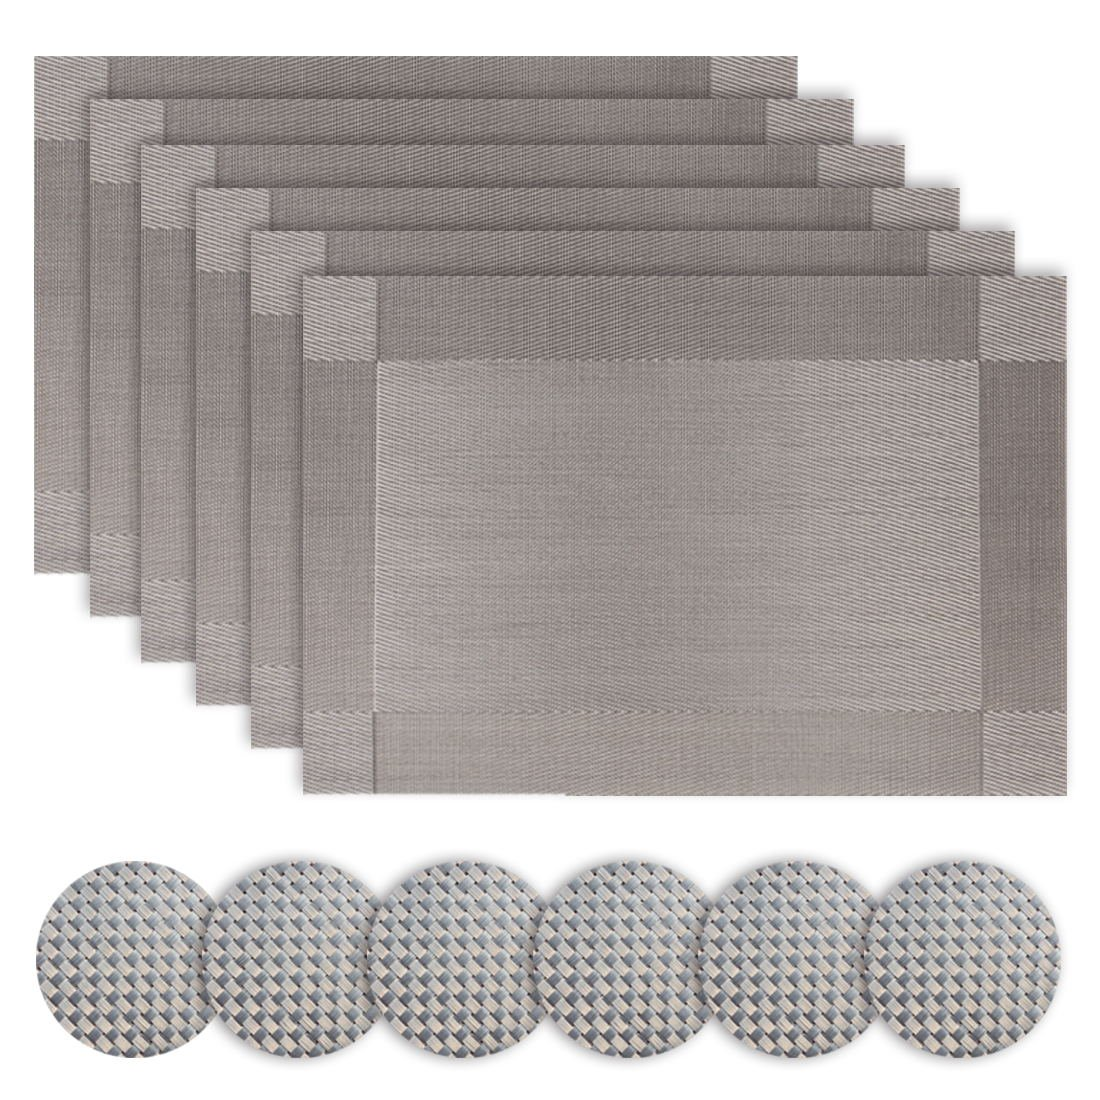 Silver Place Mats Table Mat Set Drinks Coasters Plate Mats